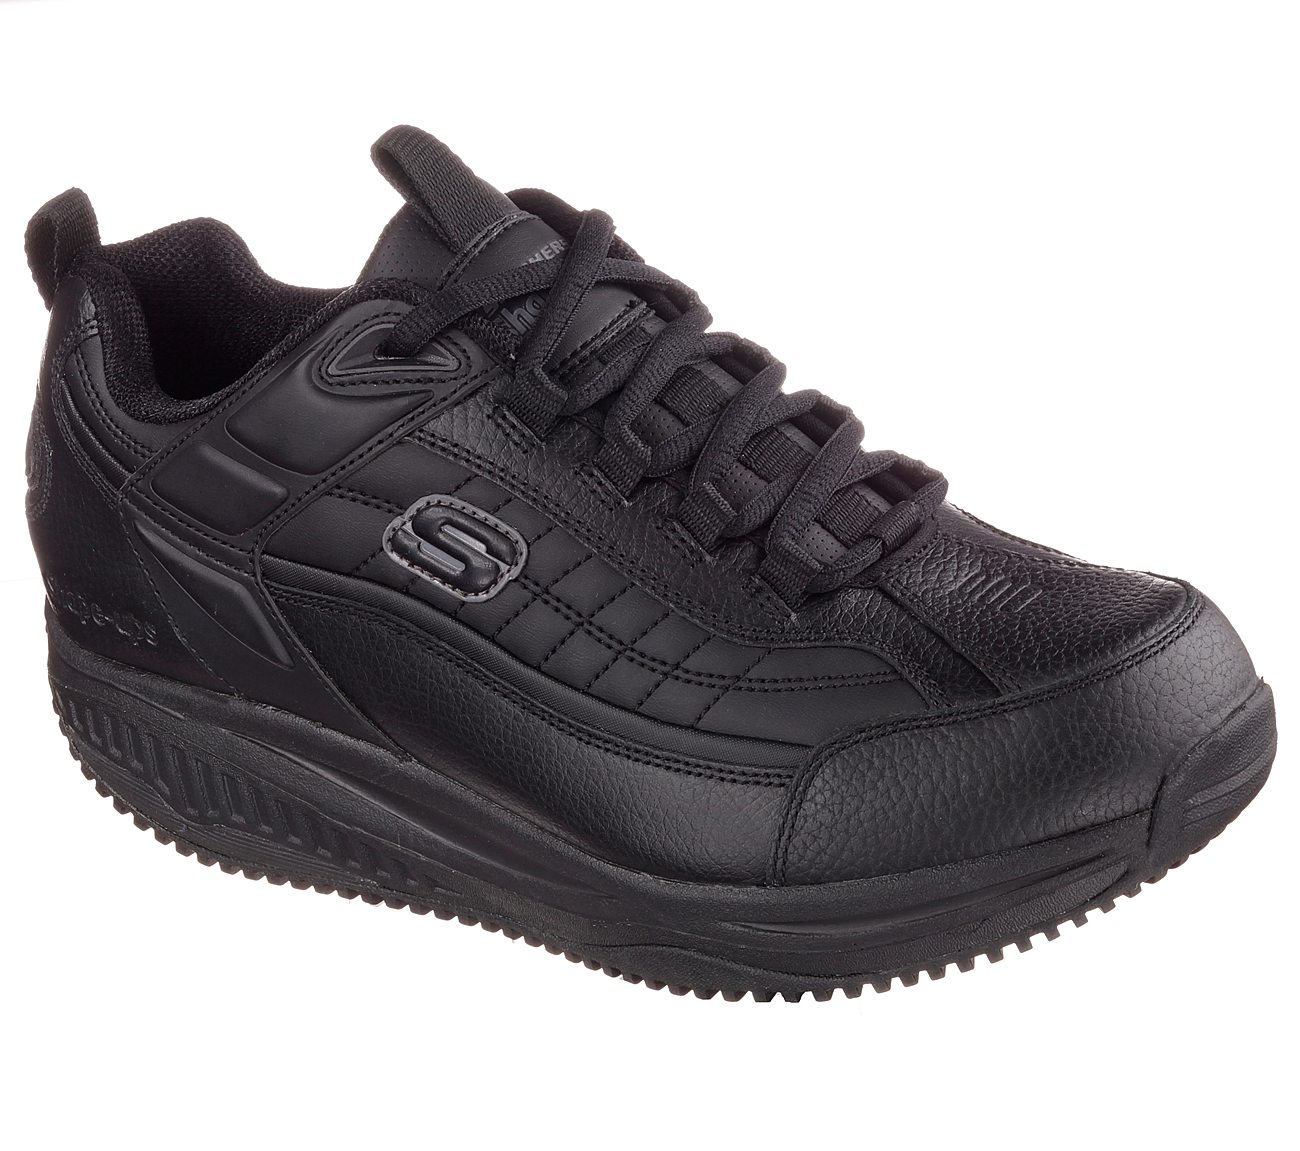 Exeter SR SKECHERS Relaxed Fit Shoes